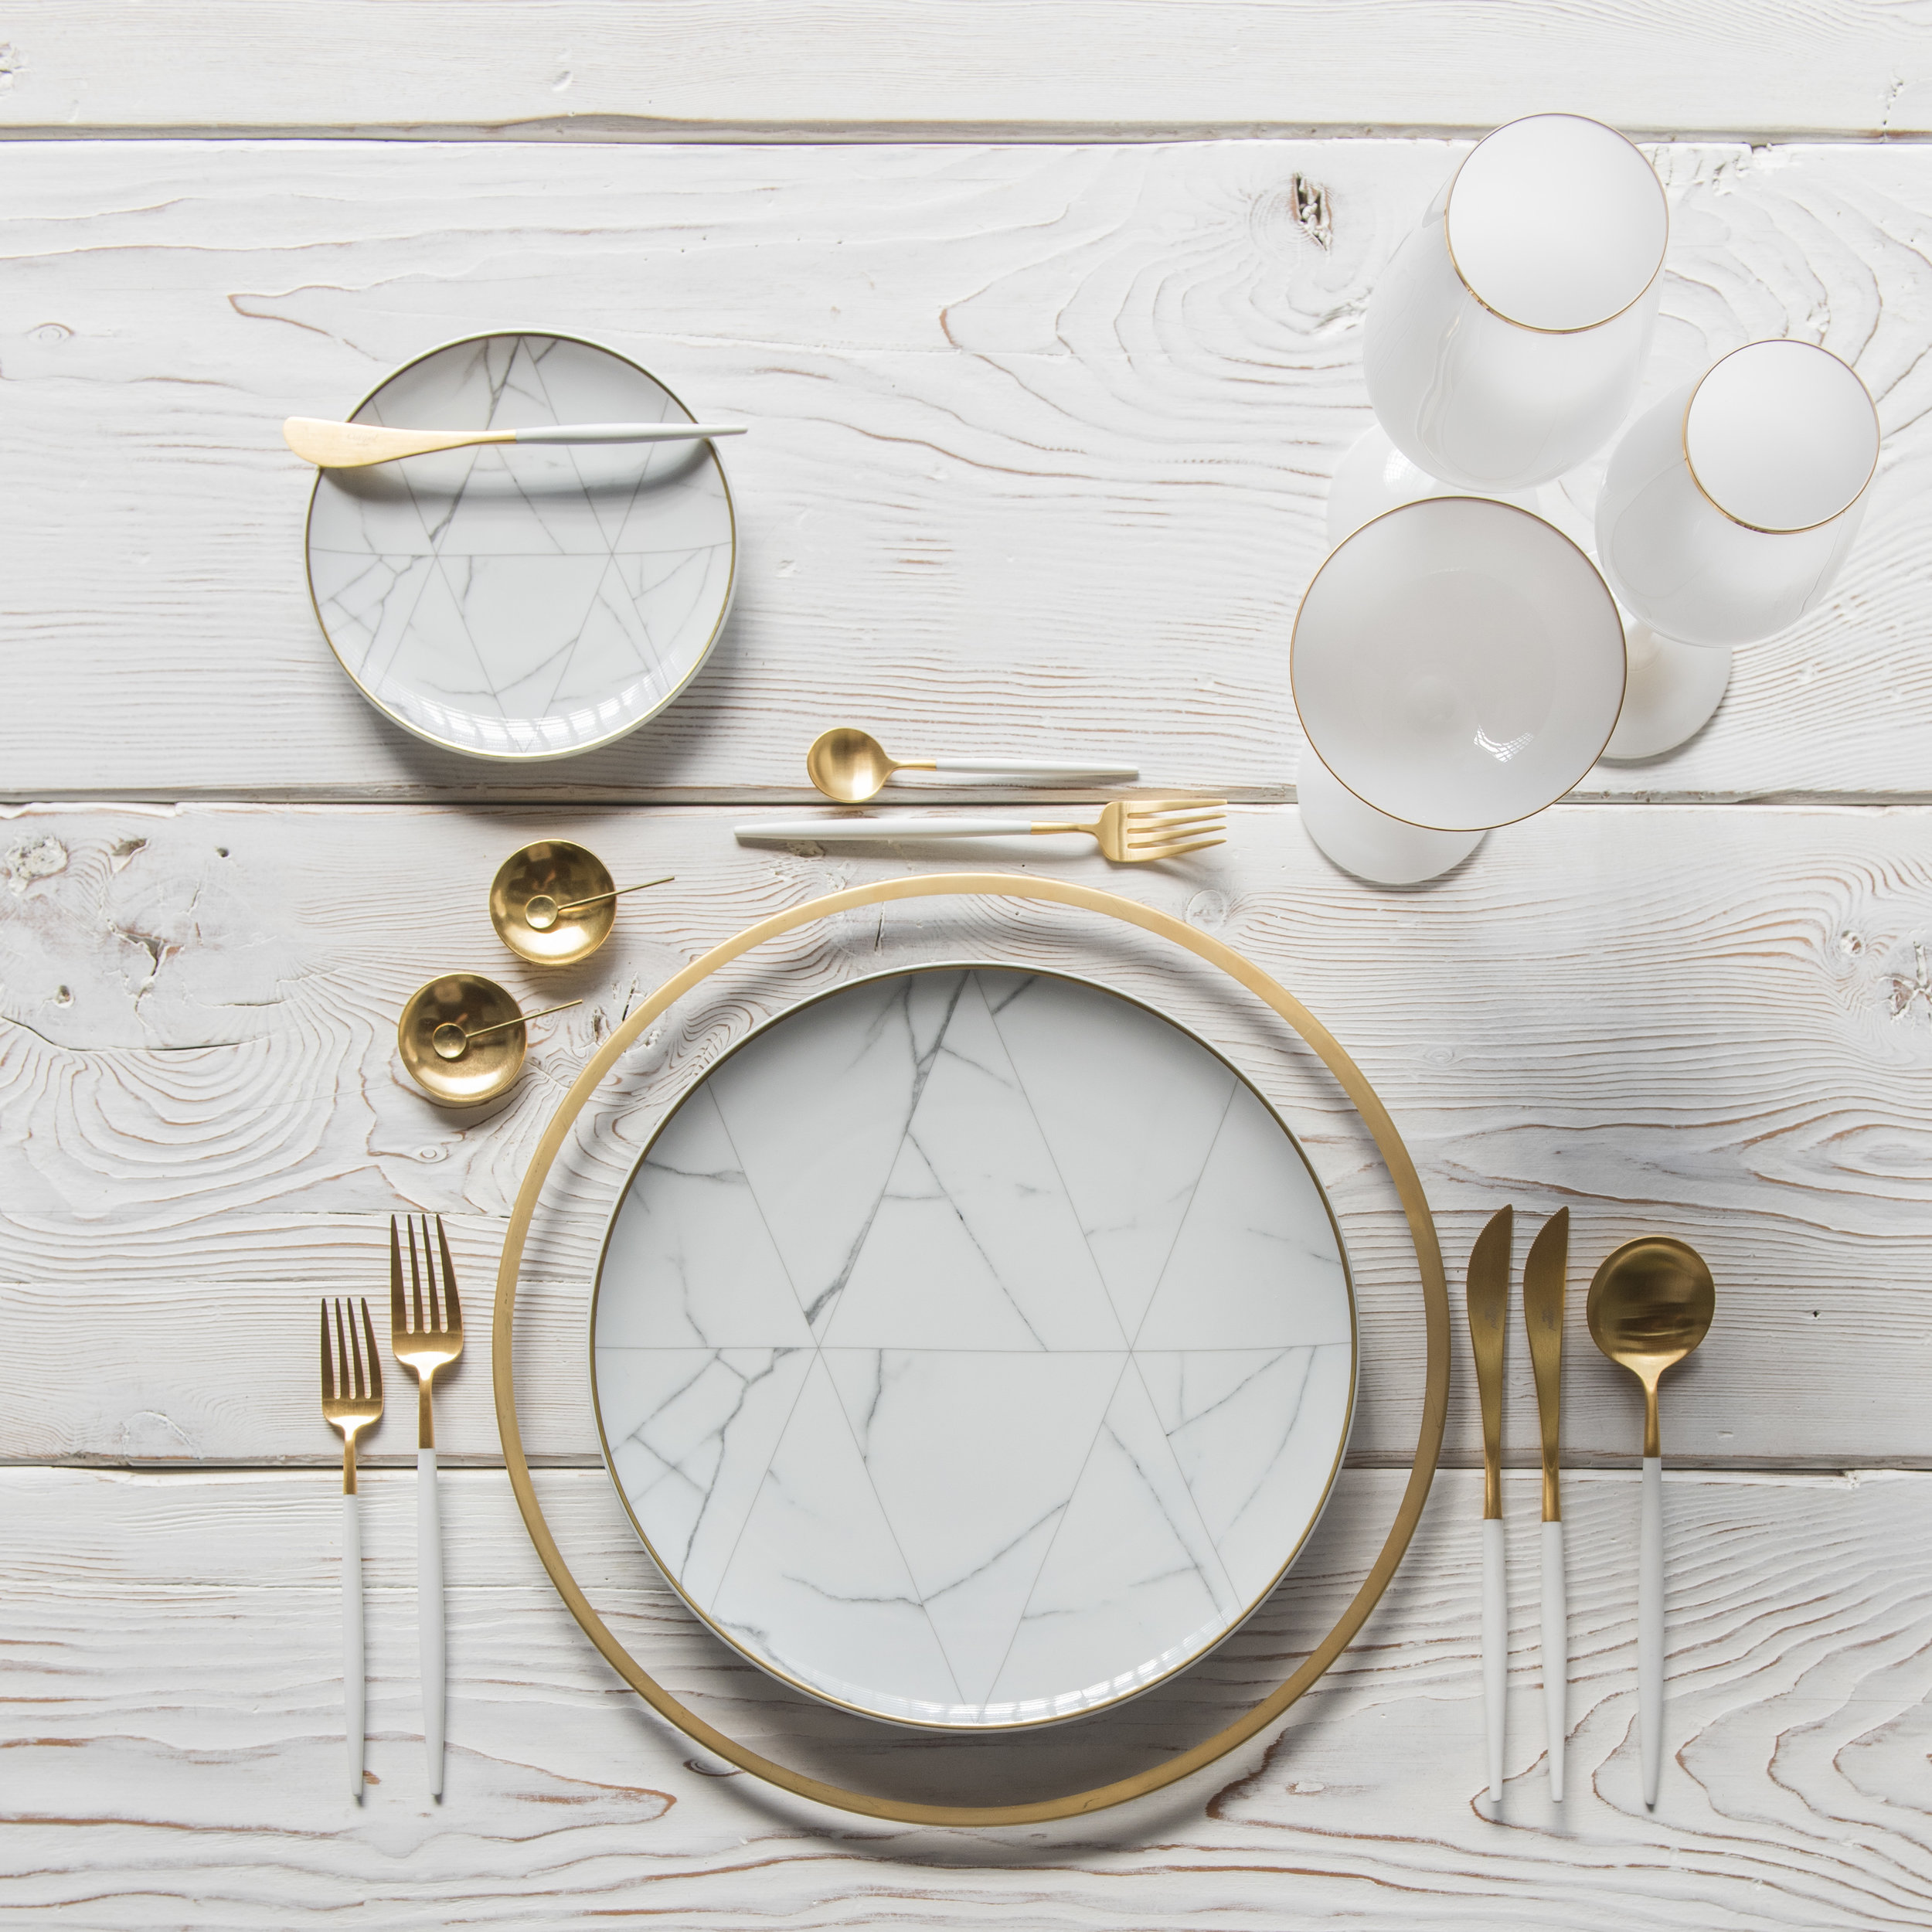 RENT: Halo Glass Chargers in 24k Gold + Carrara Dinnerware + Goa Flatware in Brushed 24k Gold/White +14k Gold Salt Cellars + Tiny Gold Spoons  SHOP:Halo Glass Chargers in 24k Gold + Carrara Dinnerware + Goa Flatware in Brushed 24k Gold/White + Bella 24k Gold Rimmed Stemware in White + 14k Gold Salt Cellars + Tiny Gold Spoons